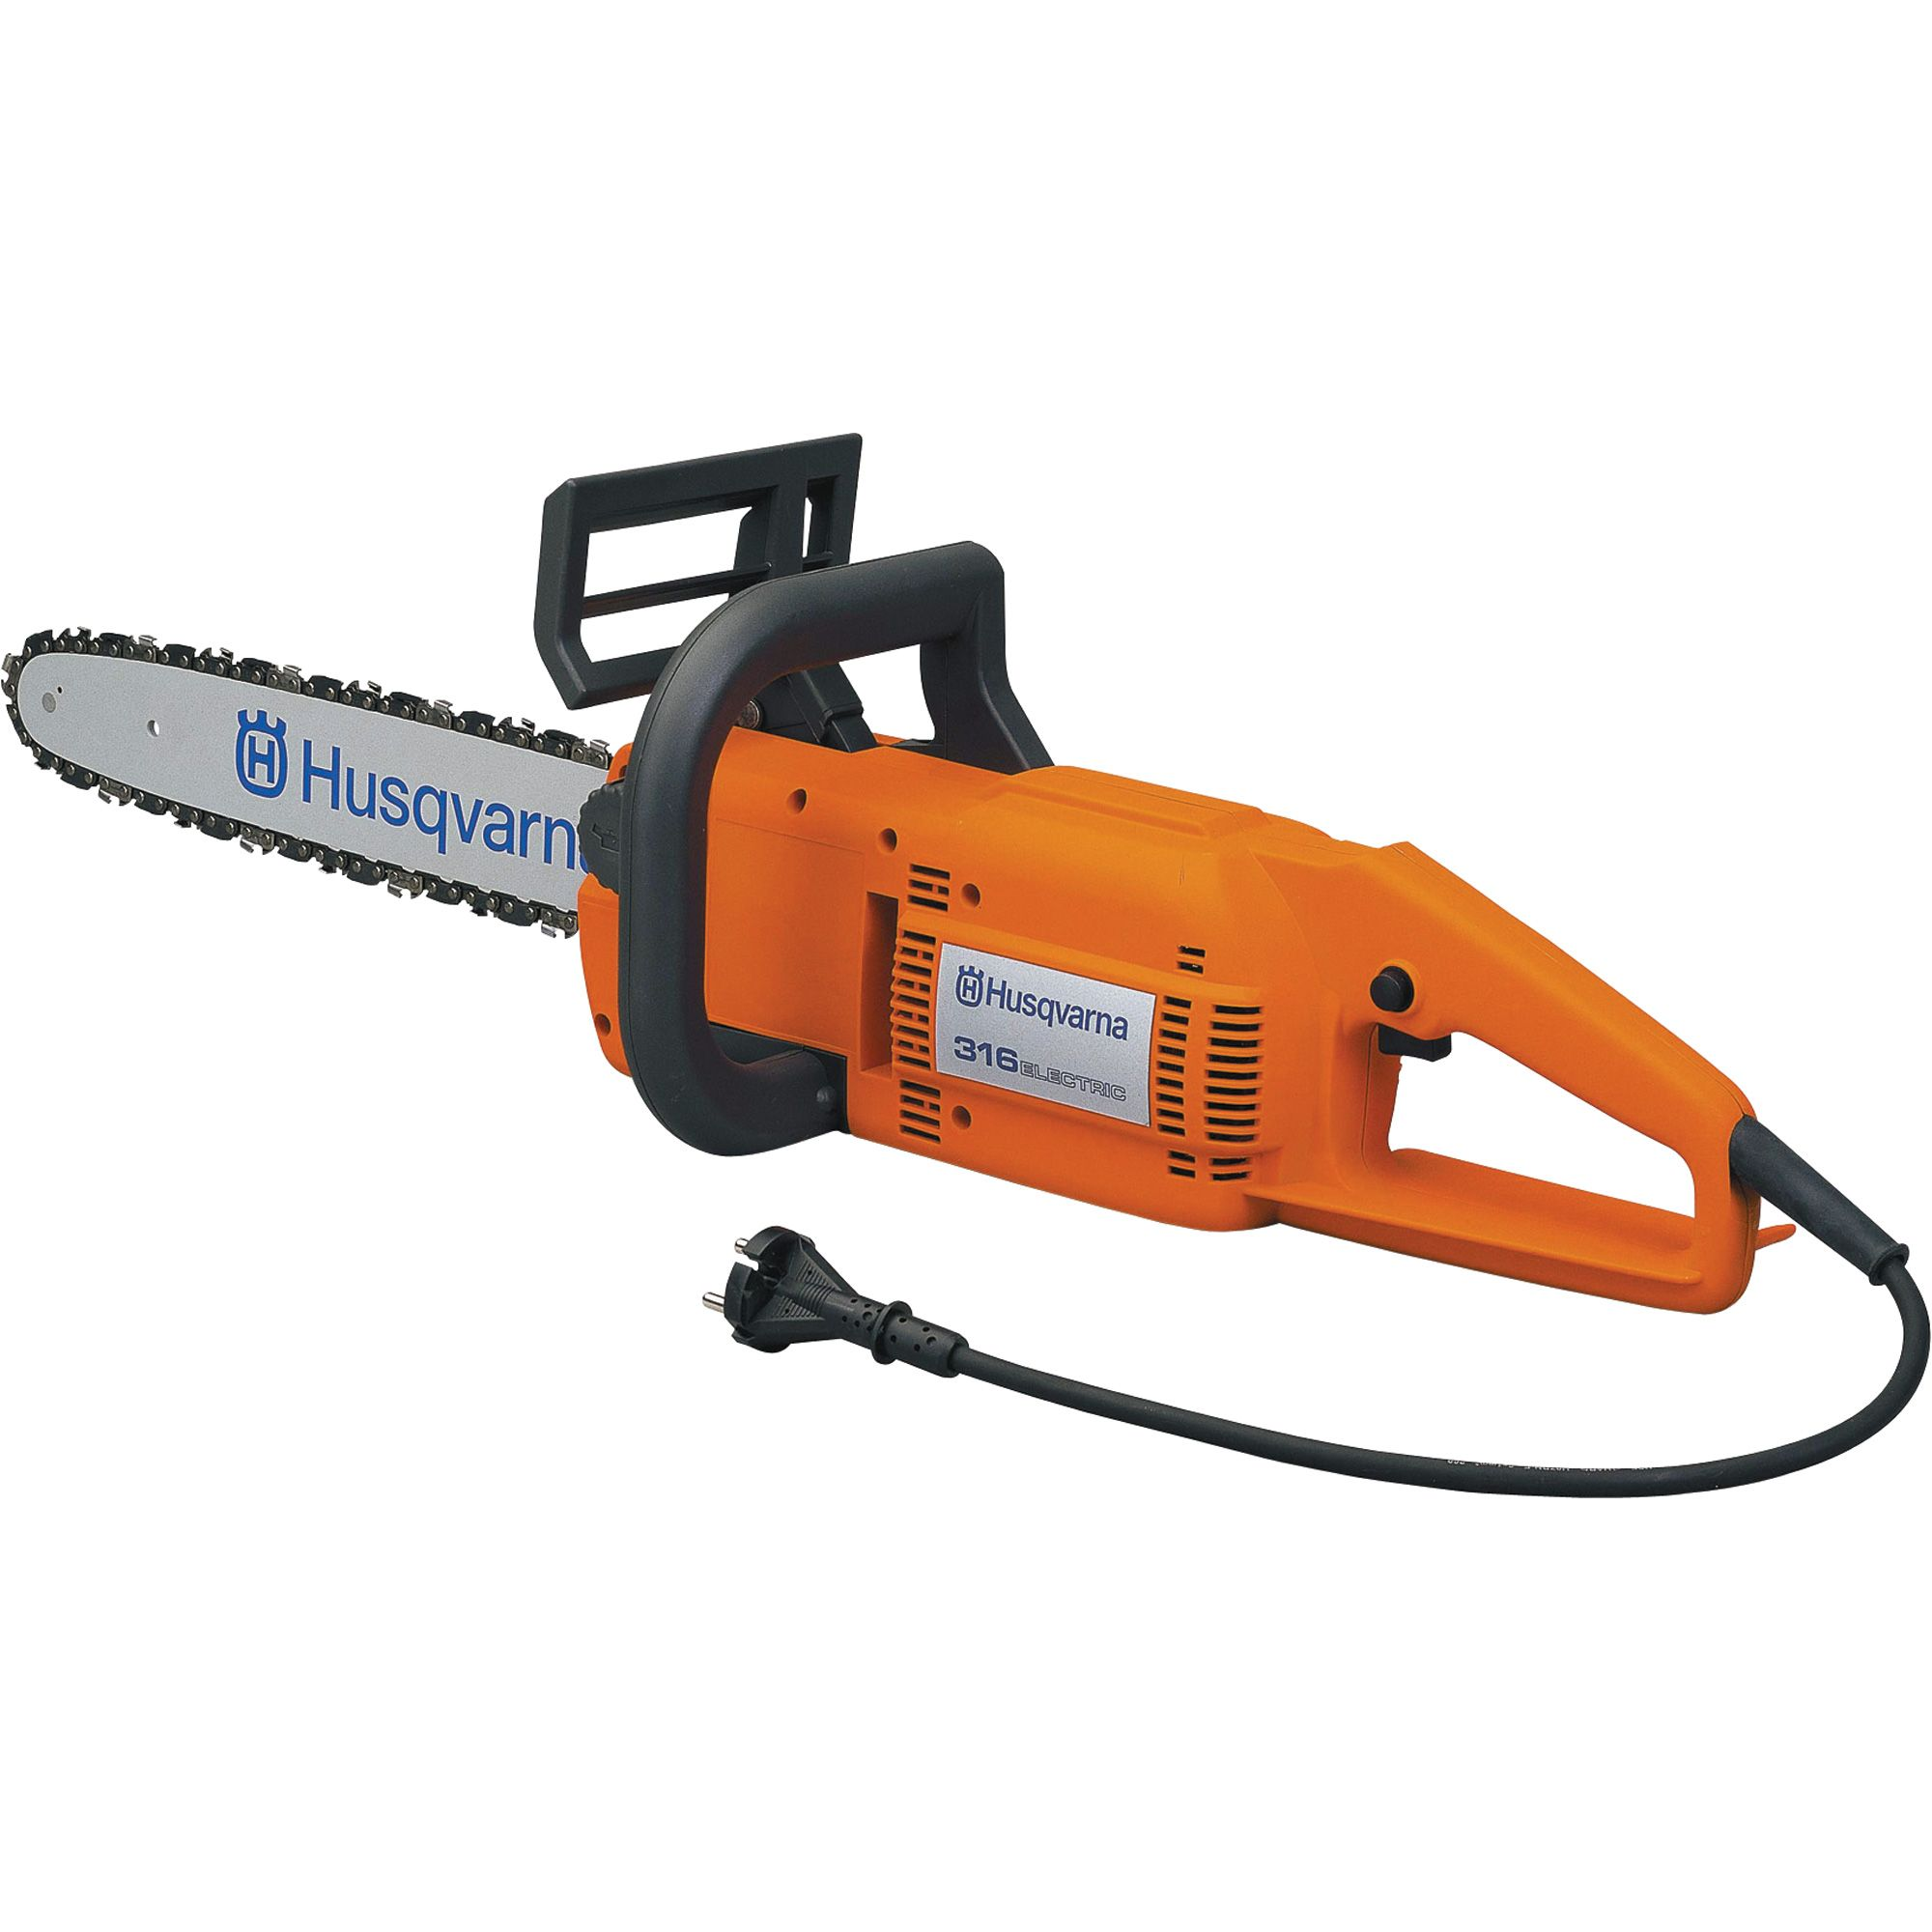 Husqvarna chainsaw electric google search husqvarna chainsaw greentooth Gallery